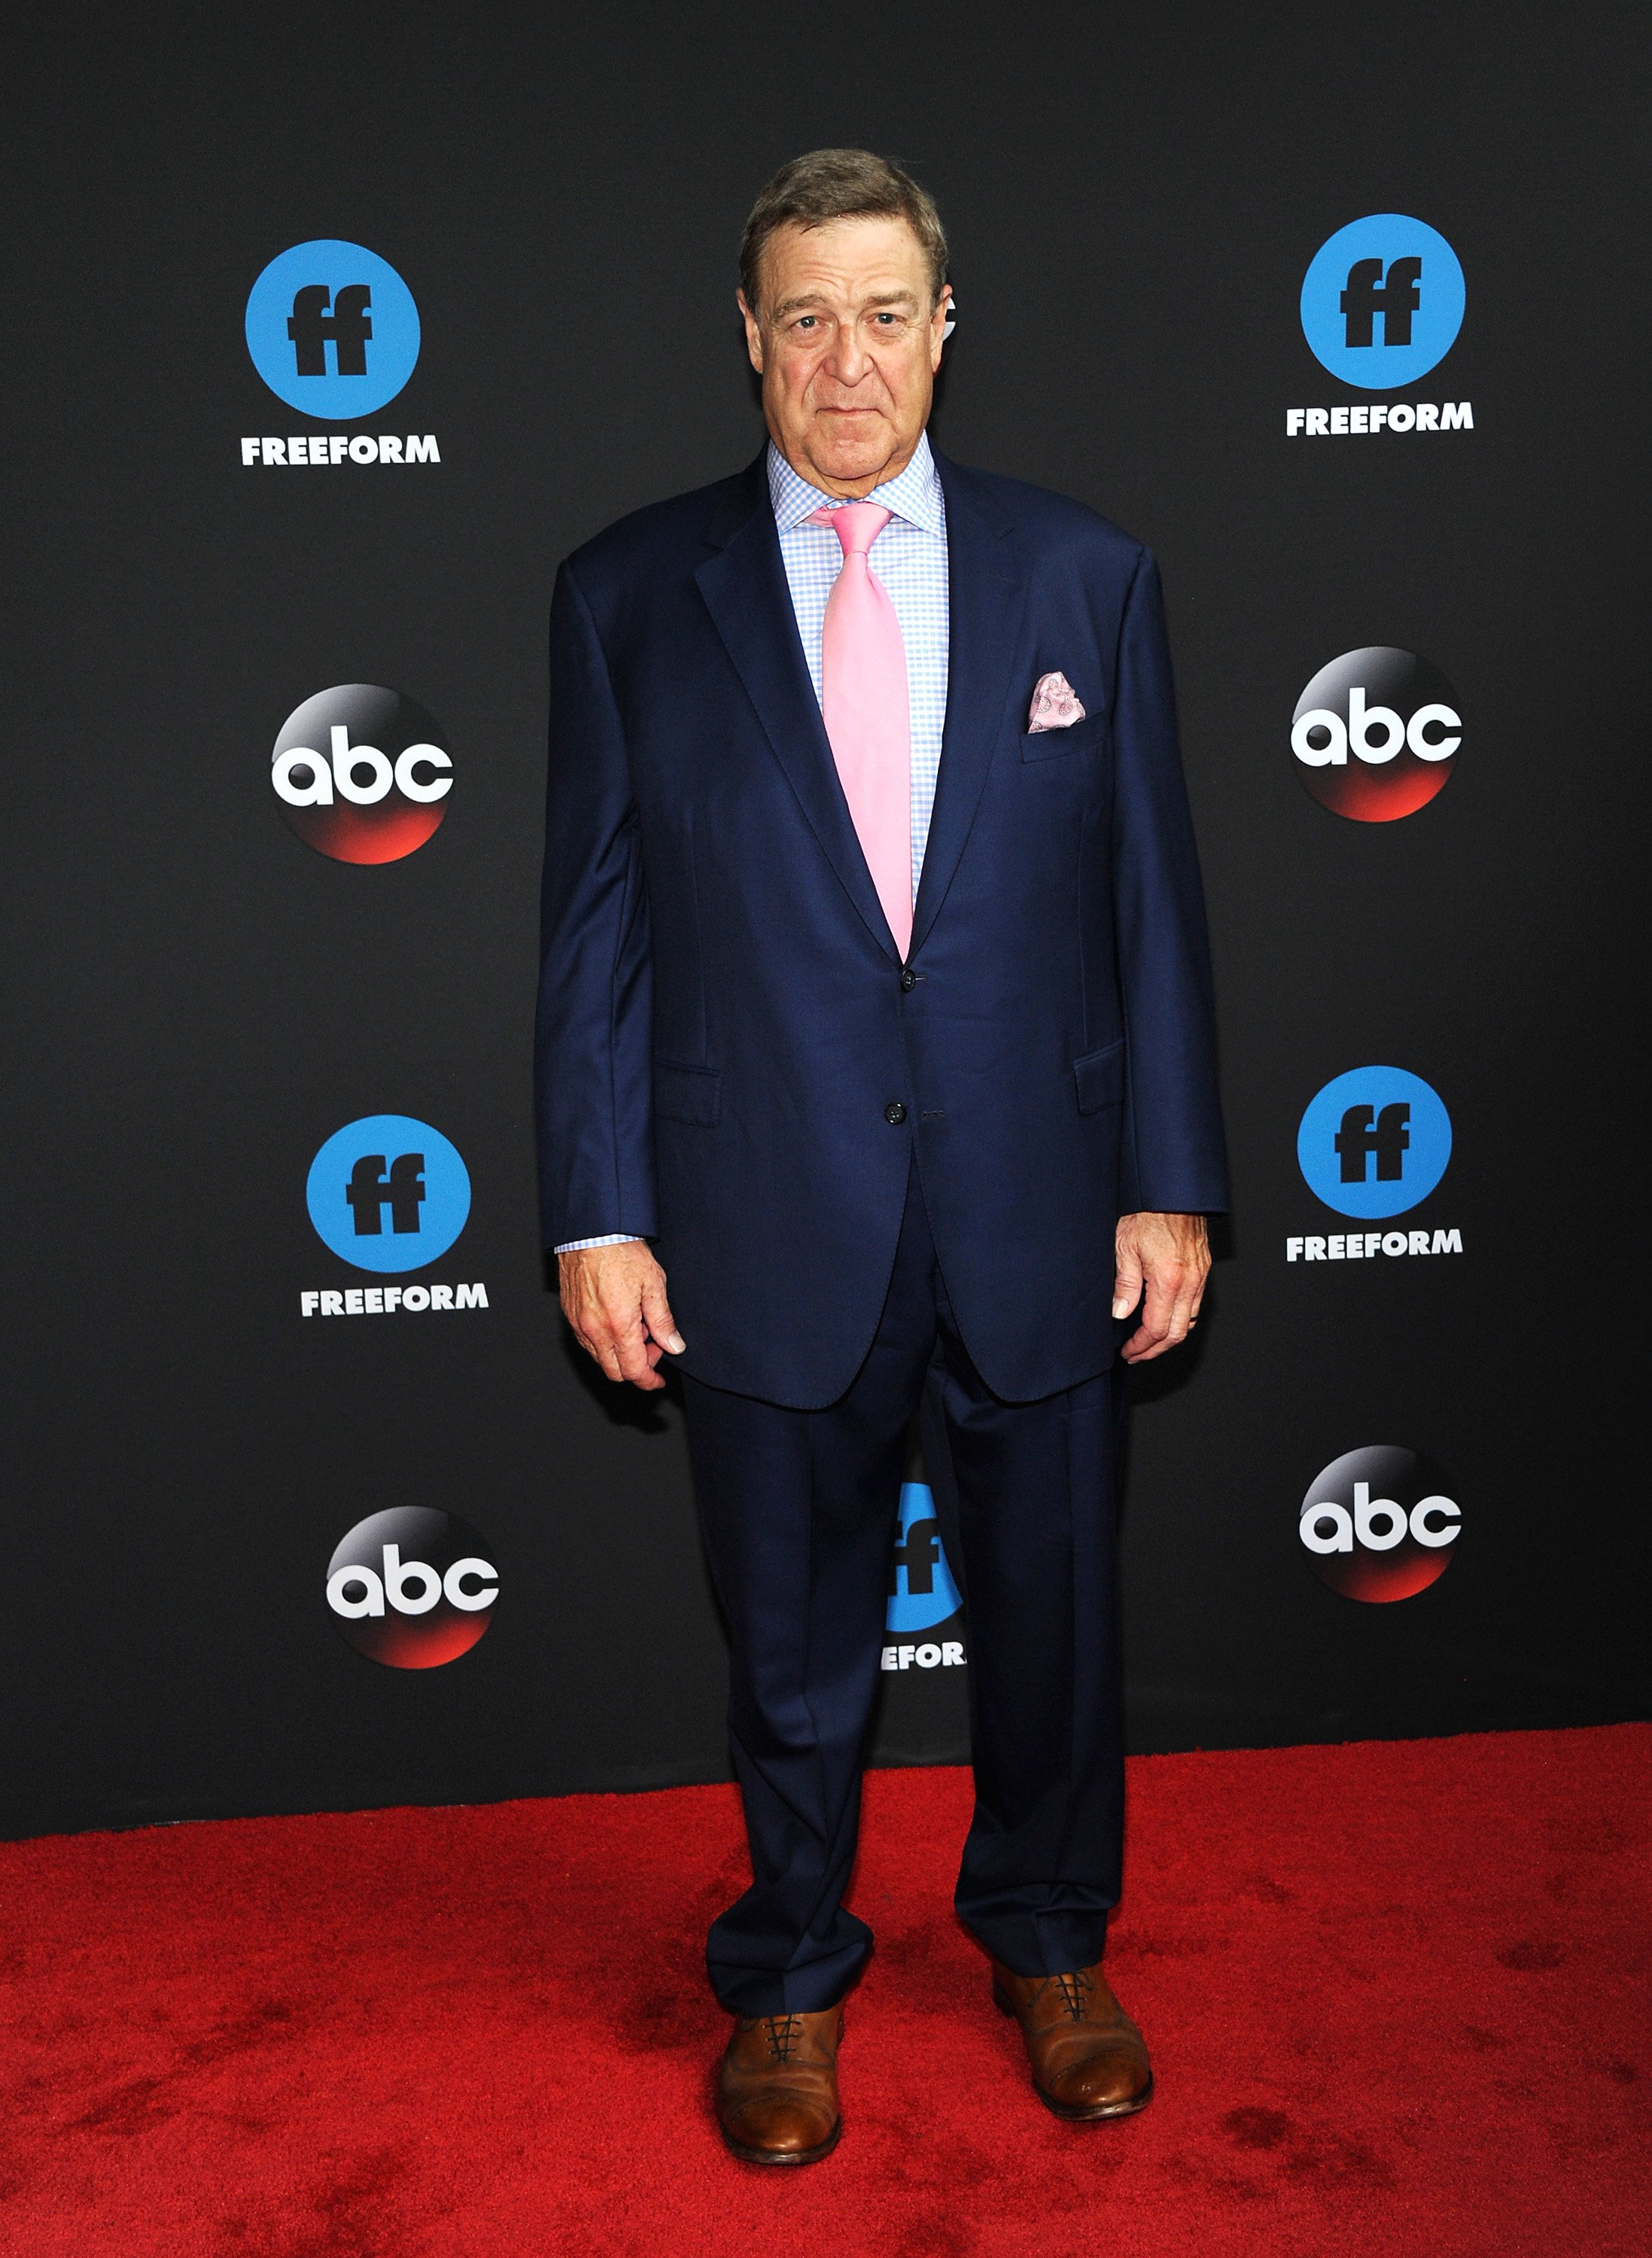 John Goodman nimmt am 15. Mai 2018 an der Disney, ABC, Freeform Upfront 2018 in New York City teil. | Quelle: Getty images